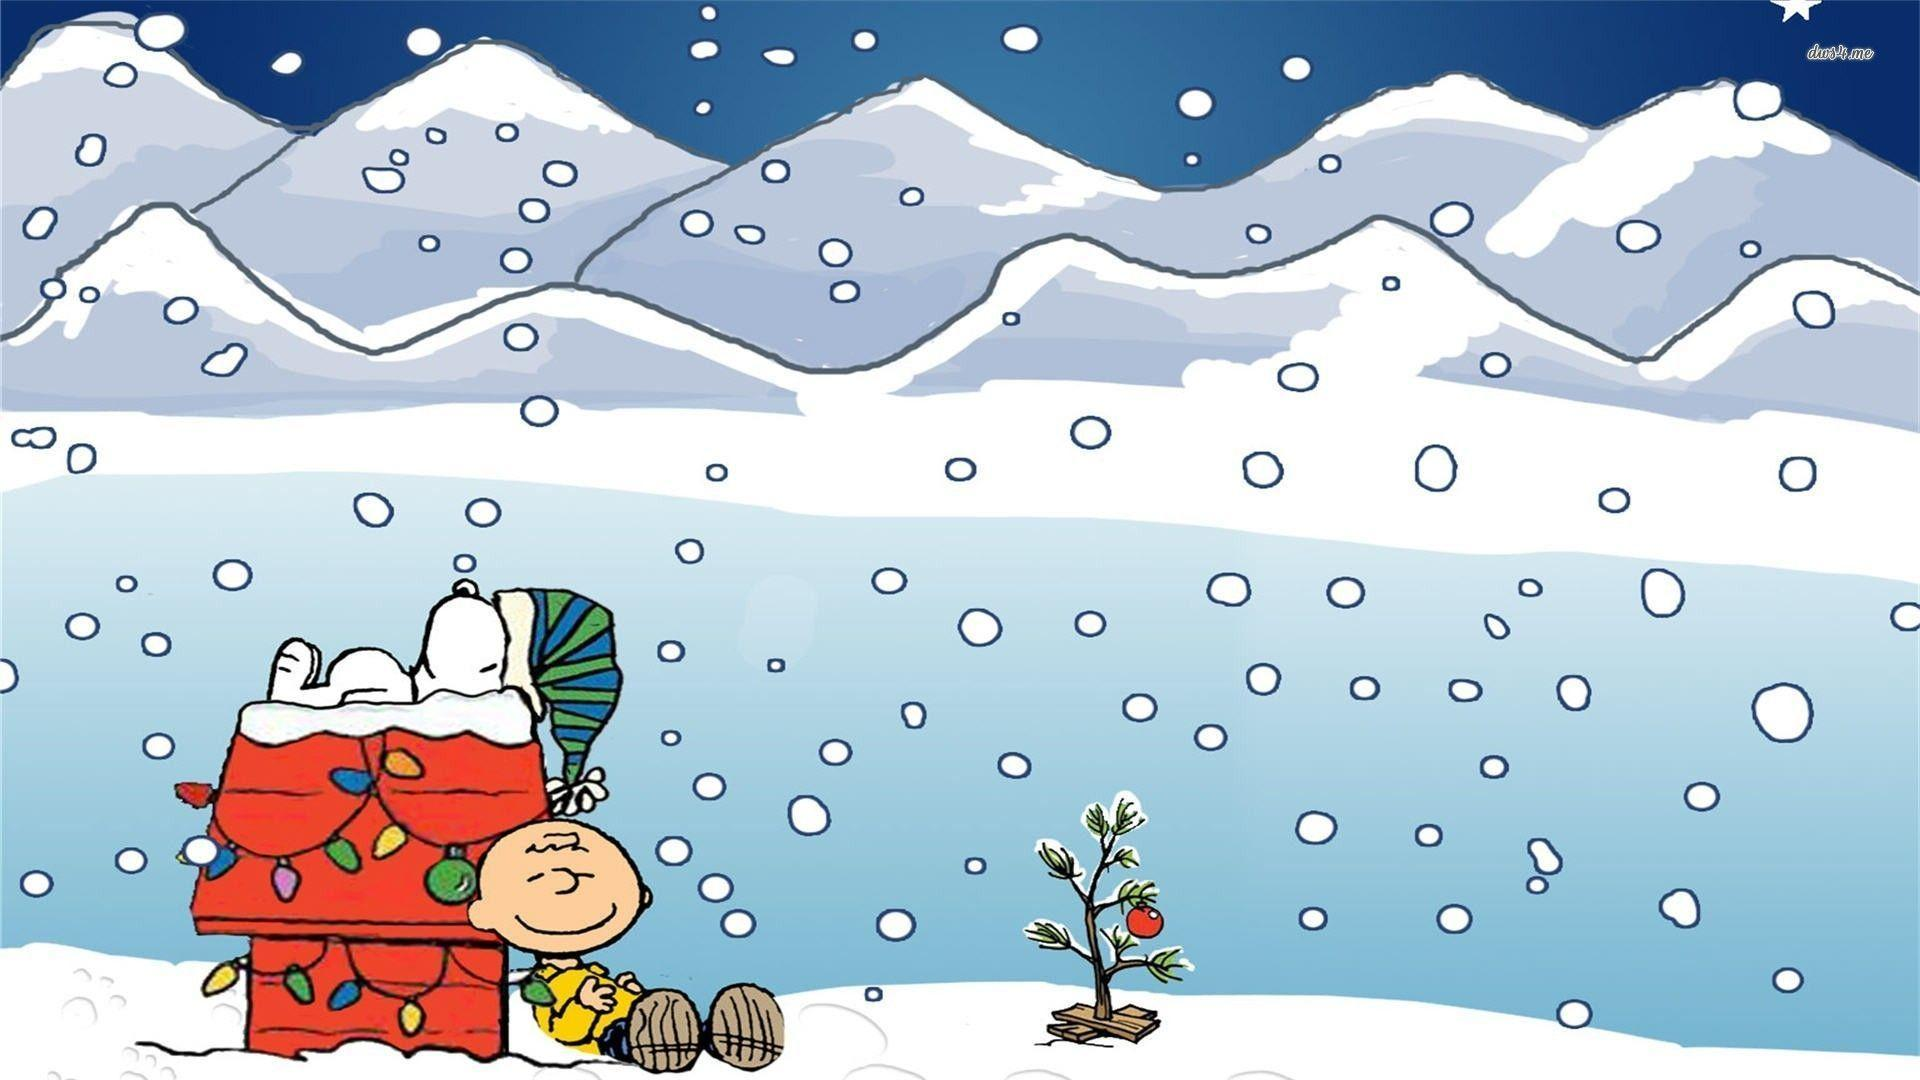 Snoopy Christmas Backgrounds 1920x1080